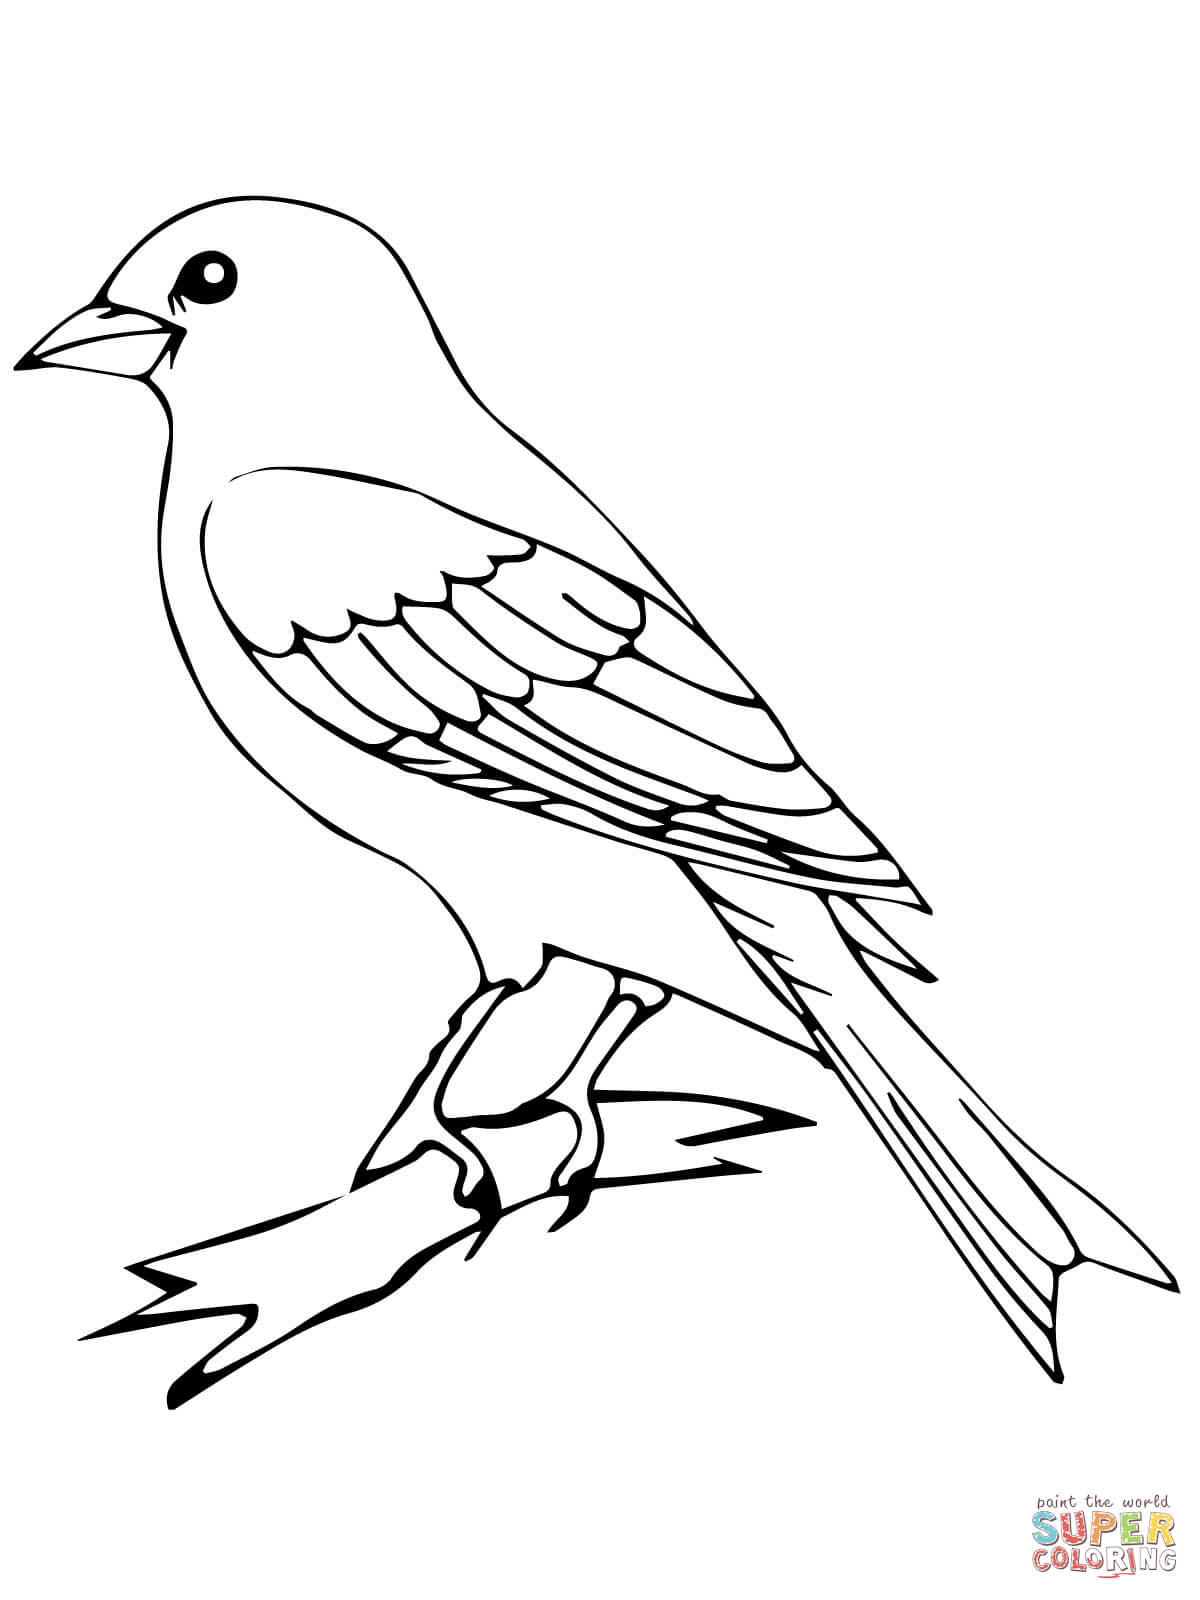 Perched Canary Bird Coloring Page